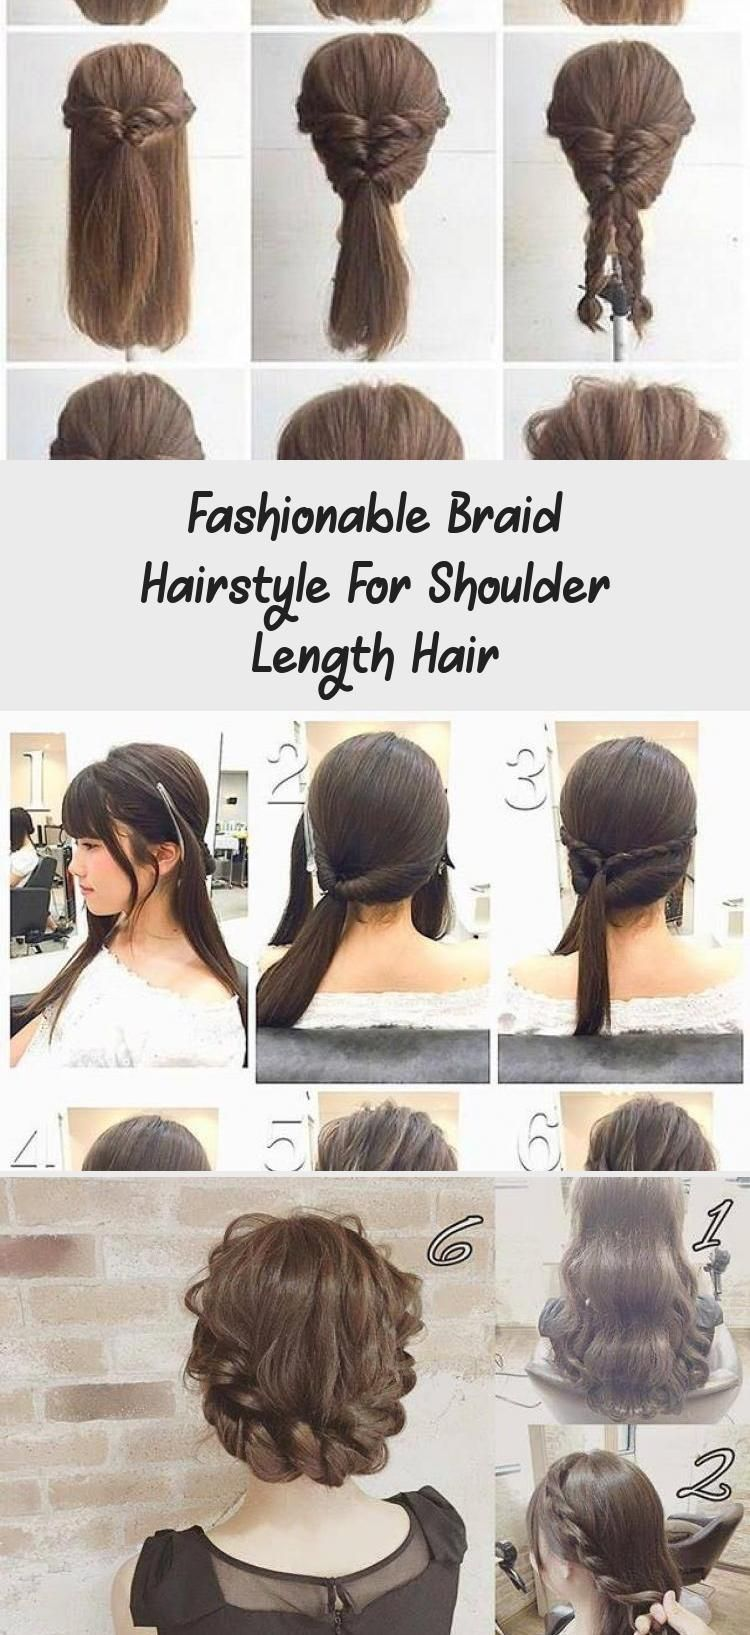 Fashionable Braid Hairstyle For Shoulder Length Hair Blowouthairtutorial Hairt Blowouthairtutorial B In 2020 Shoulder Length Hair Braided Hairstyles Hair Lengths